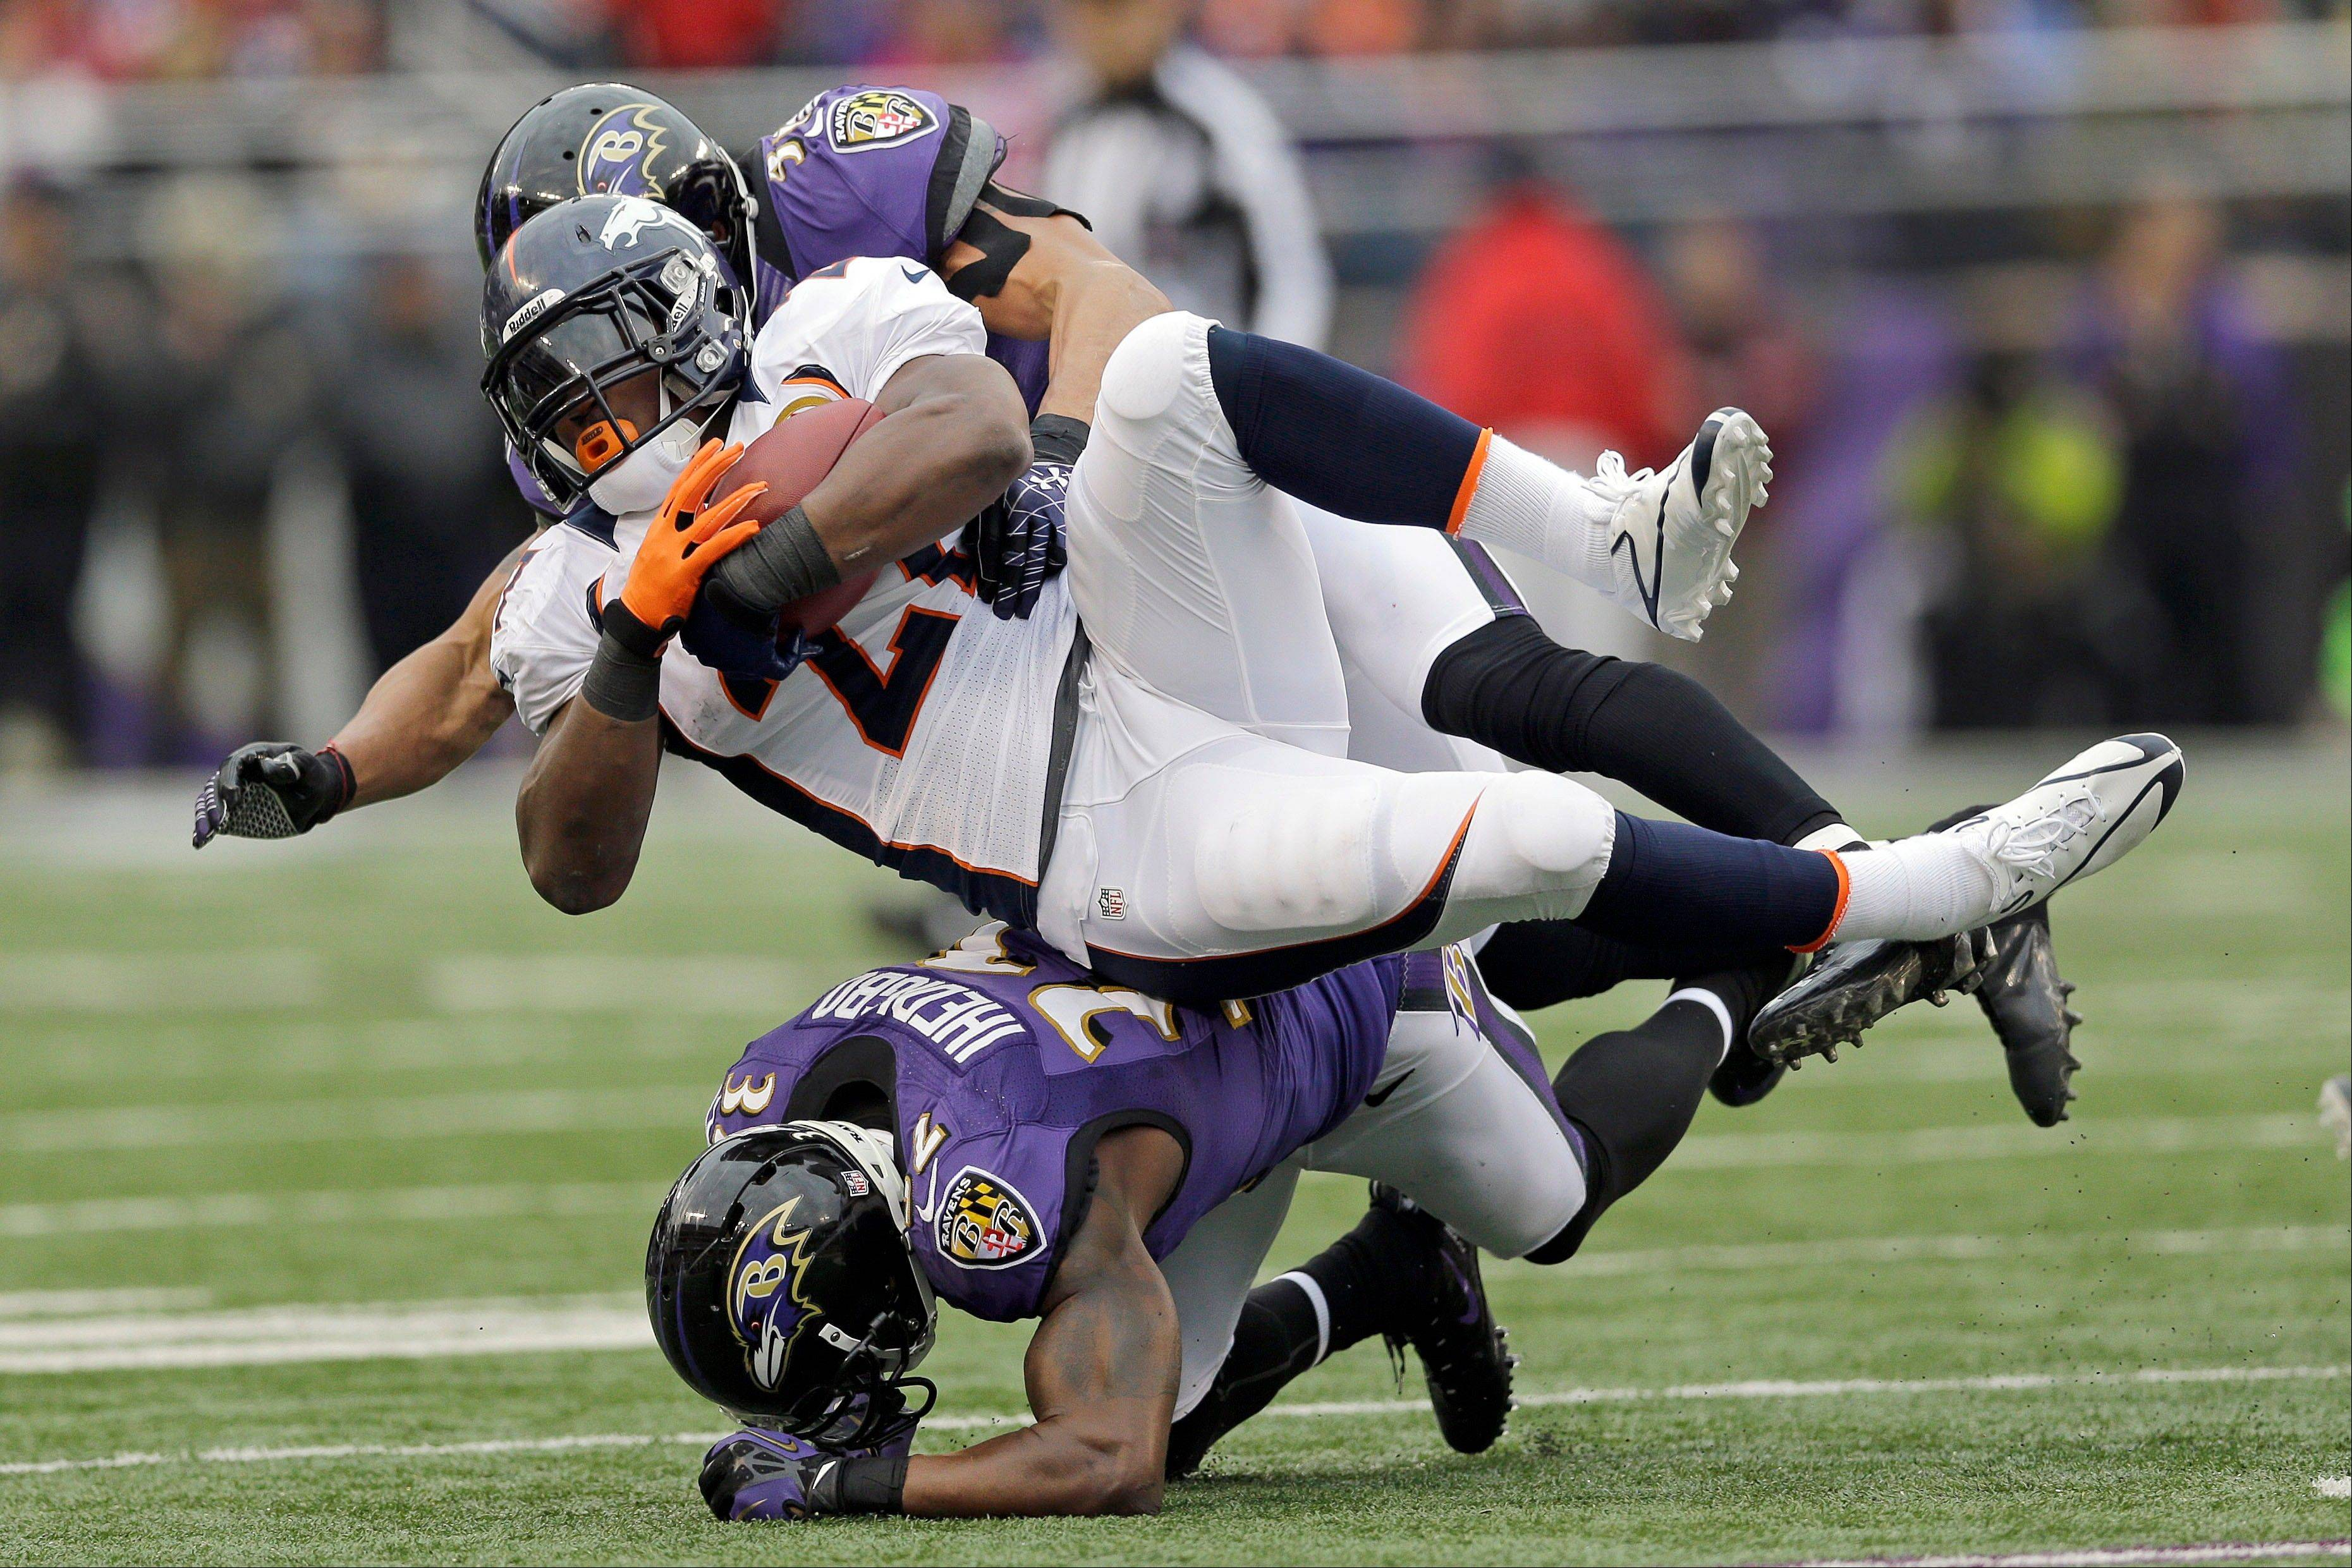 Denver Broncos running back Knowshon Moreno is stopped by Baltimore Ravens inside linebacker Brendon Ayanbadejo, top, and defensive back James Ihedigbo, bottom during the first half in Baltimore, Sunday.